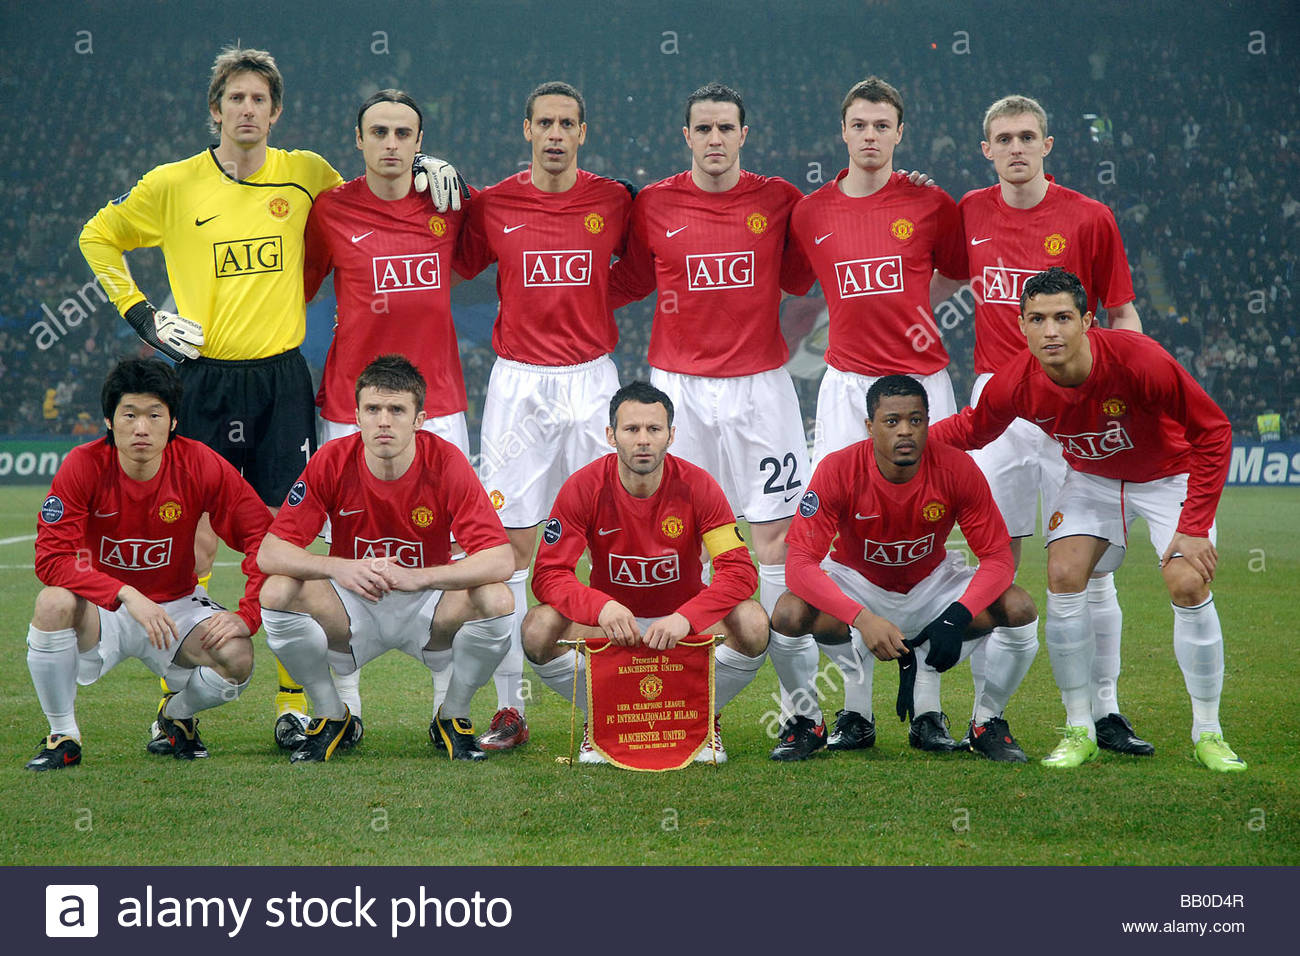 The Best Formazione Manchester United 2008